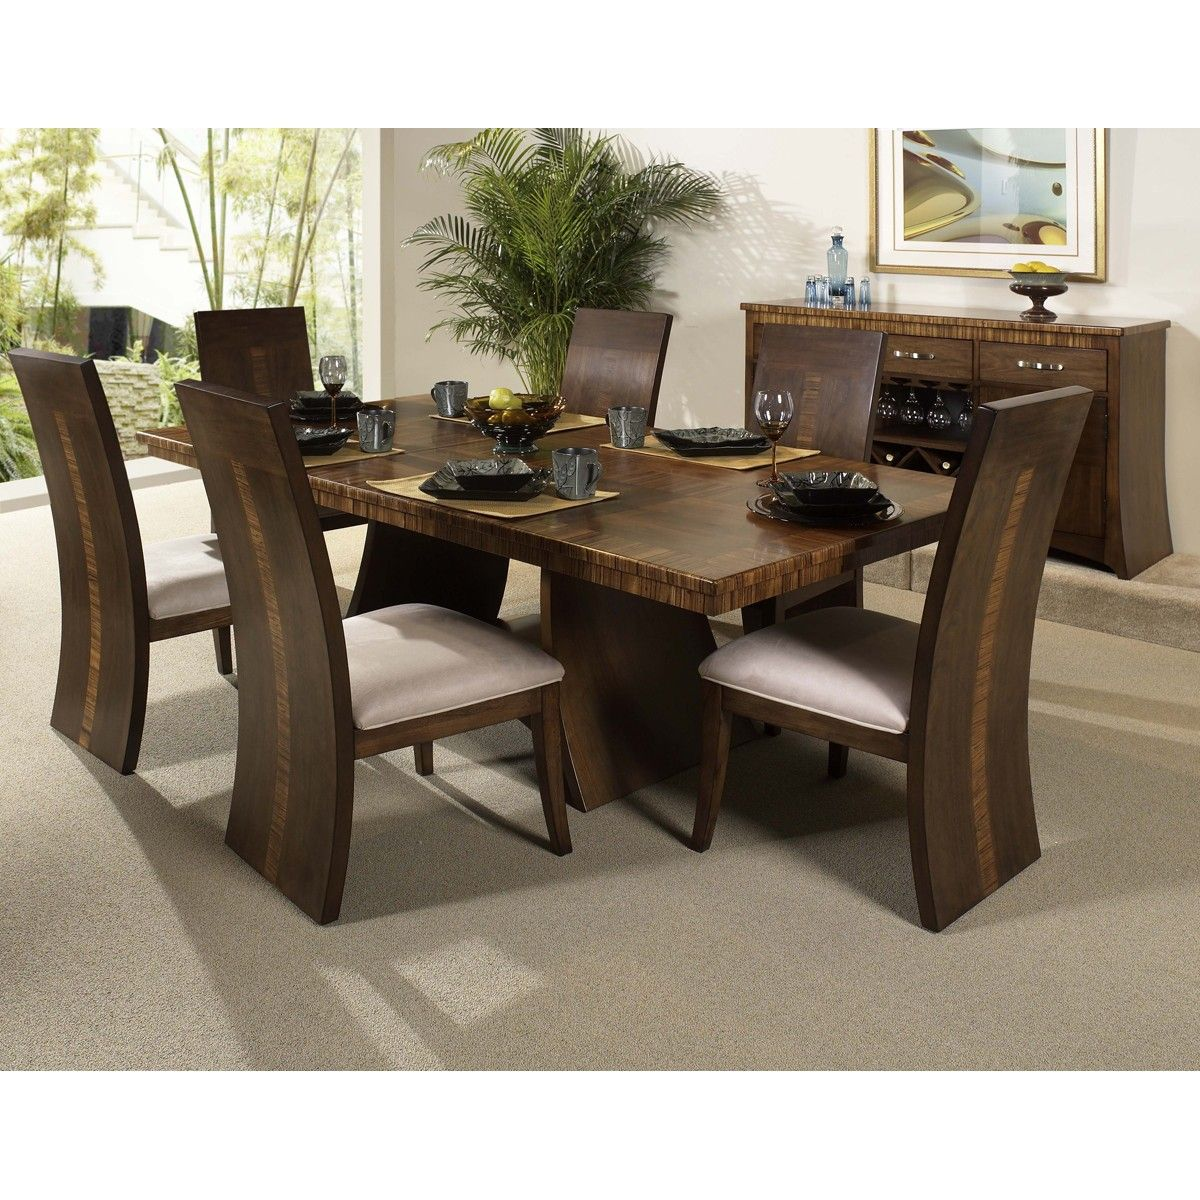 Elegant Dining Room, 7 Piece Dining Set, Kitchen Dining Sets, Dining Room  Sets